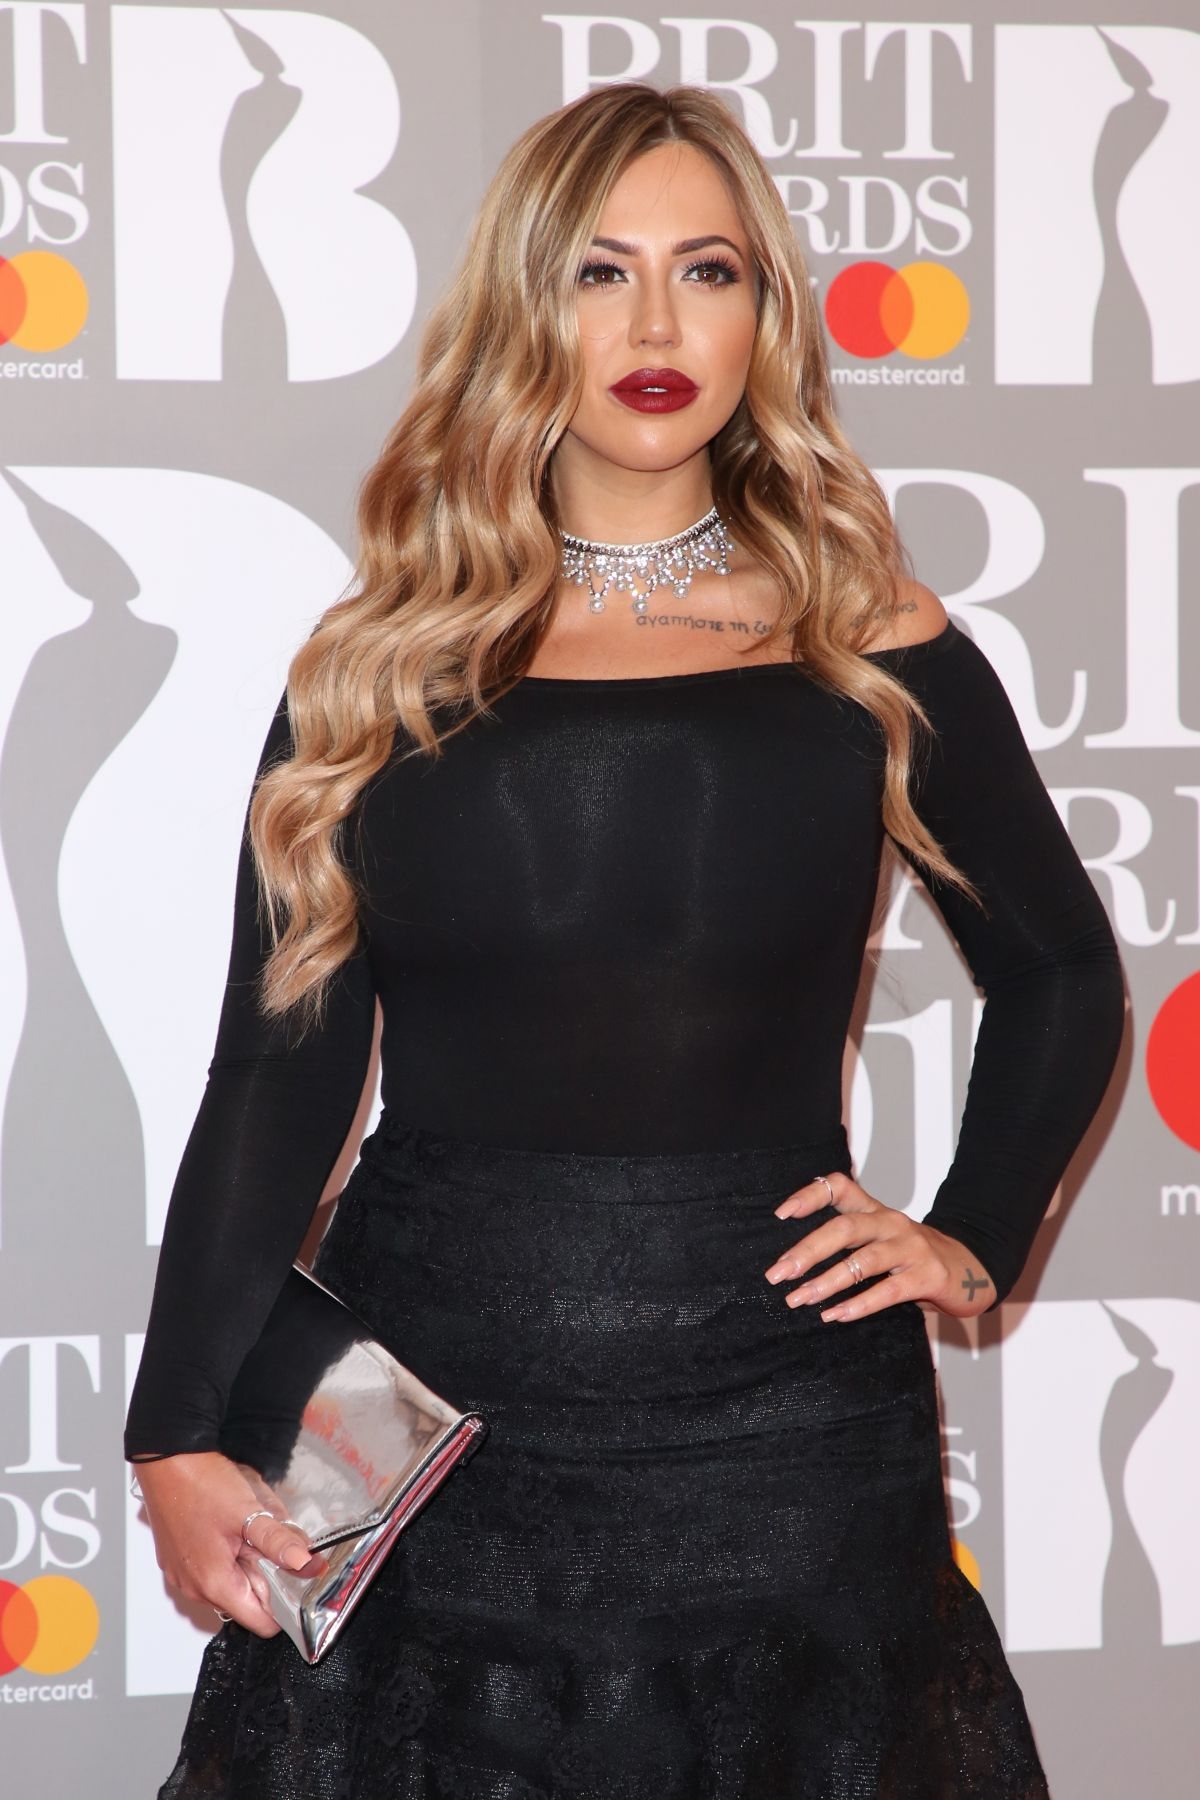 HOLLY HAGAN at Brit Awards 2017 in London 02/22/2017